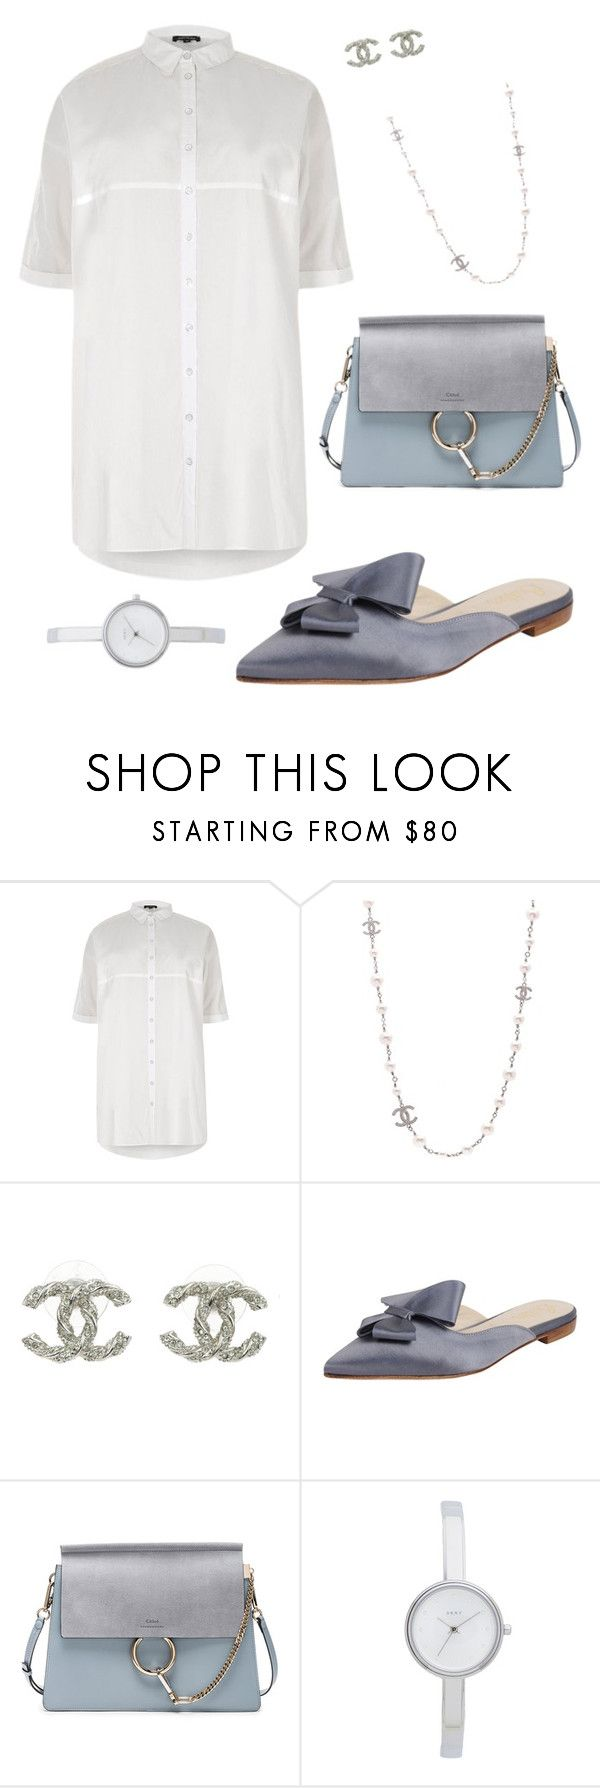 """159"" by orlianyot ❤ liked on Polyvore featuring River Island, Chanel, Butter Shoes, Chloé and DKNY"